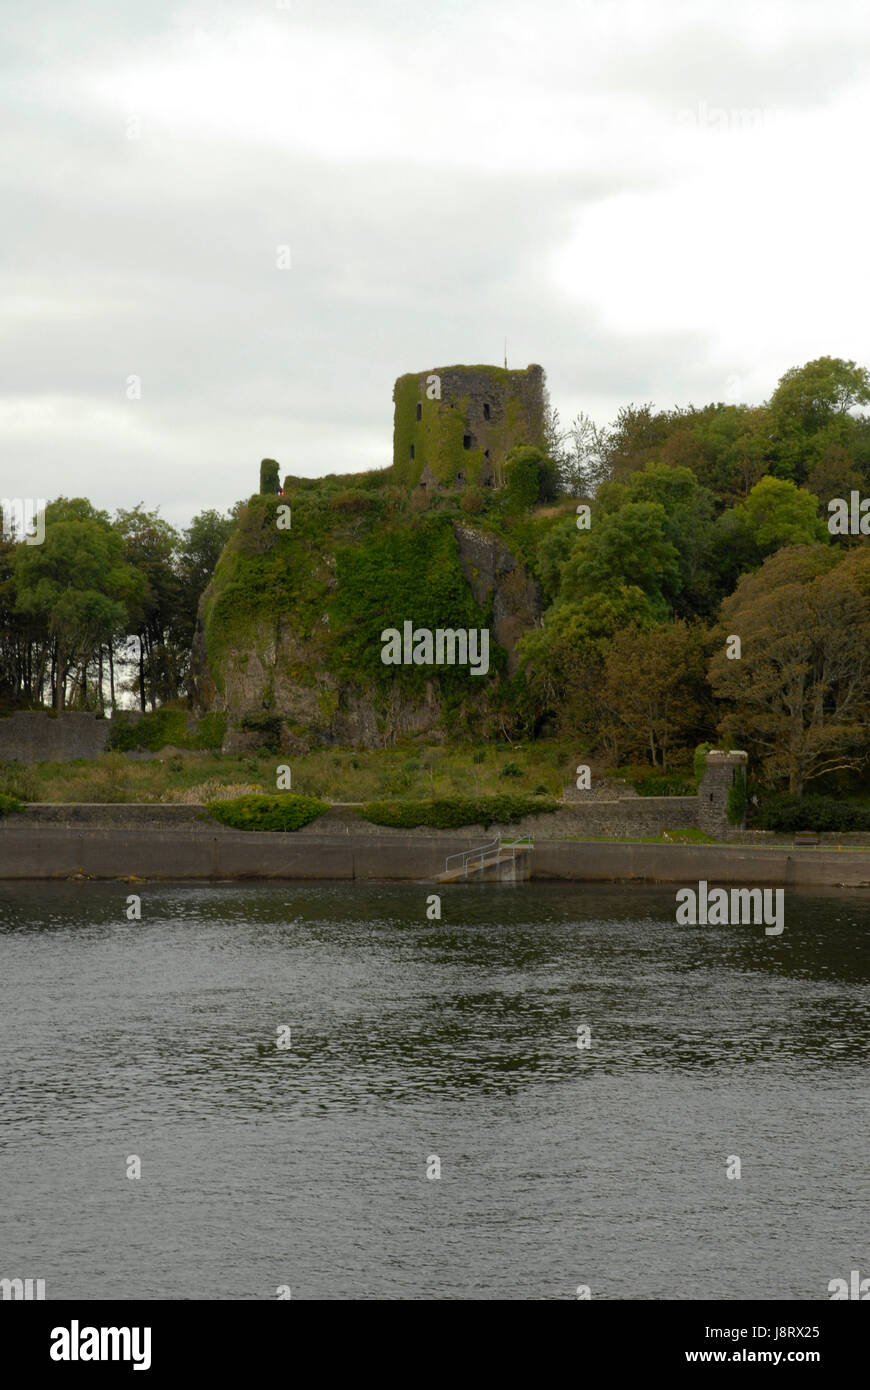 tower, waters, ruin, scotland, middle ages, tower, historical, tree, trees, Stock Photo